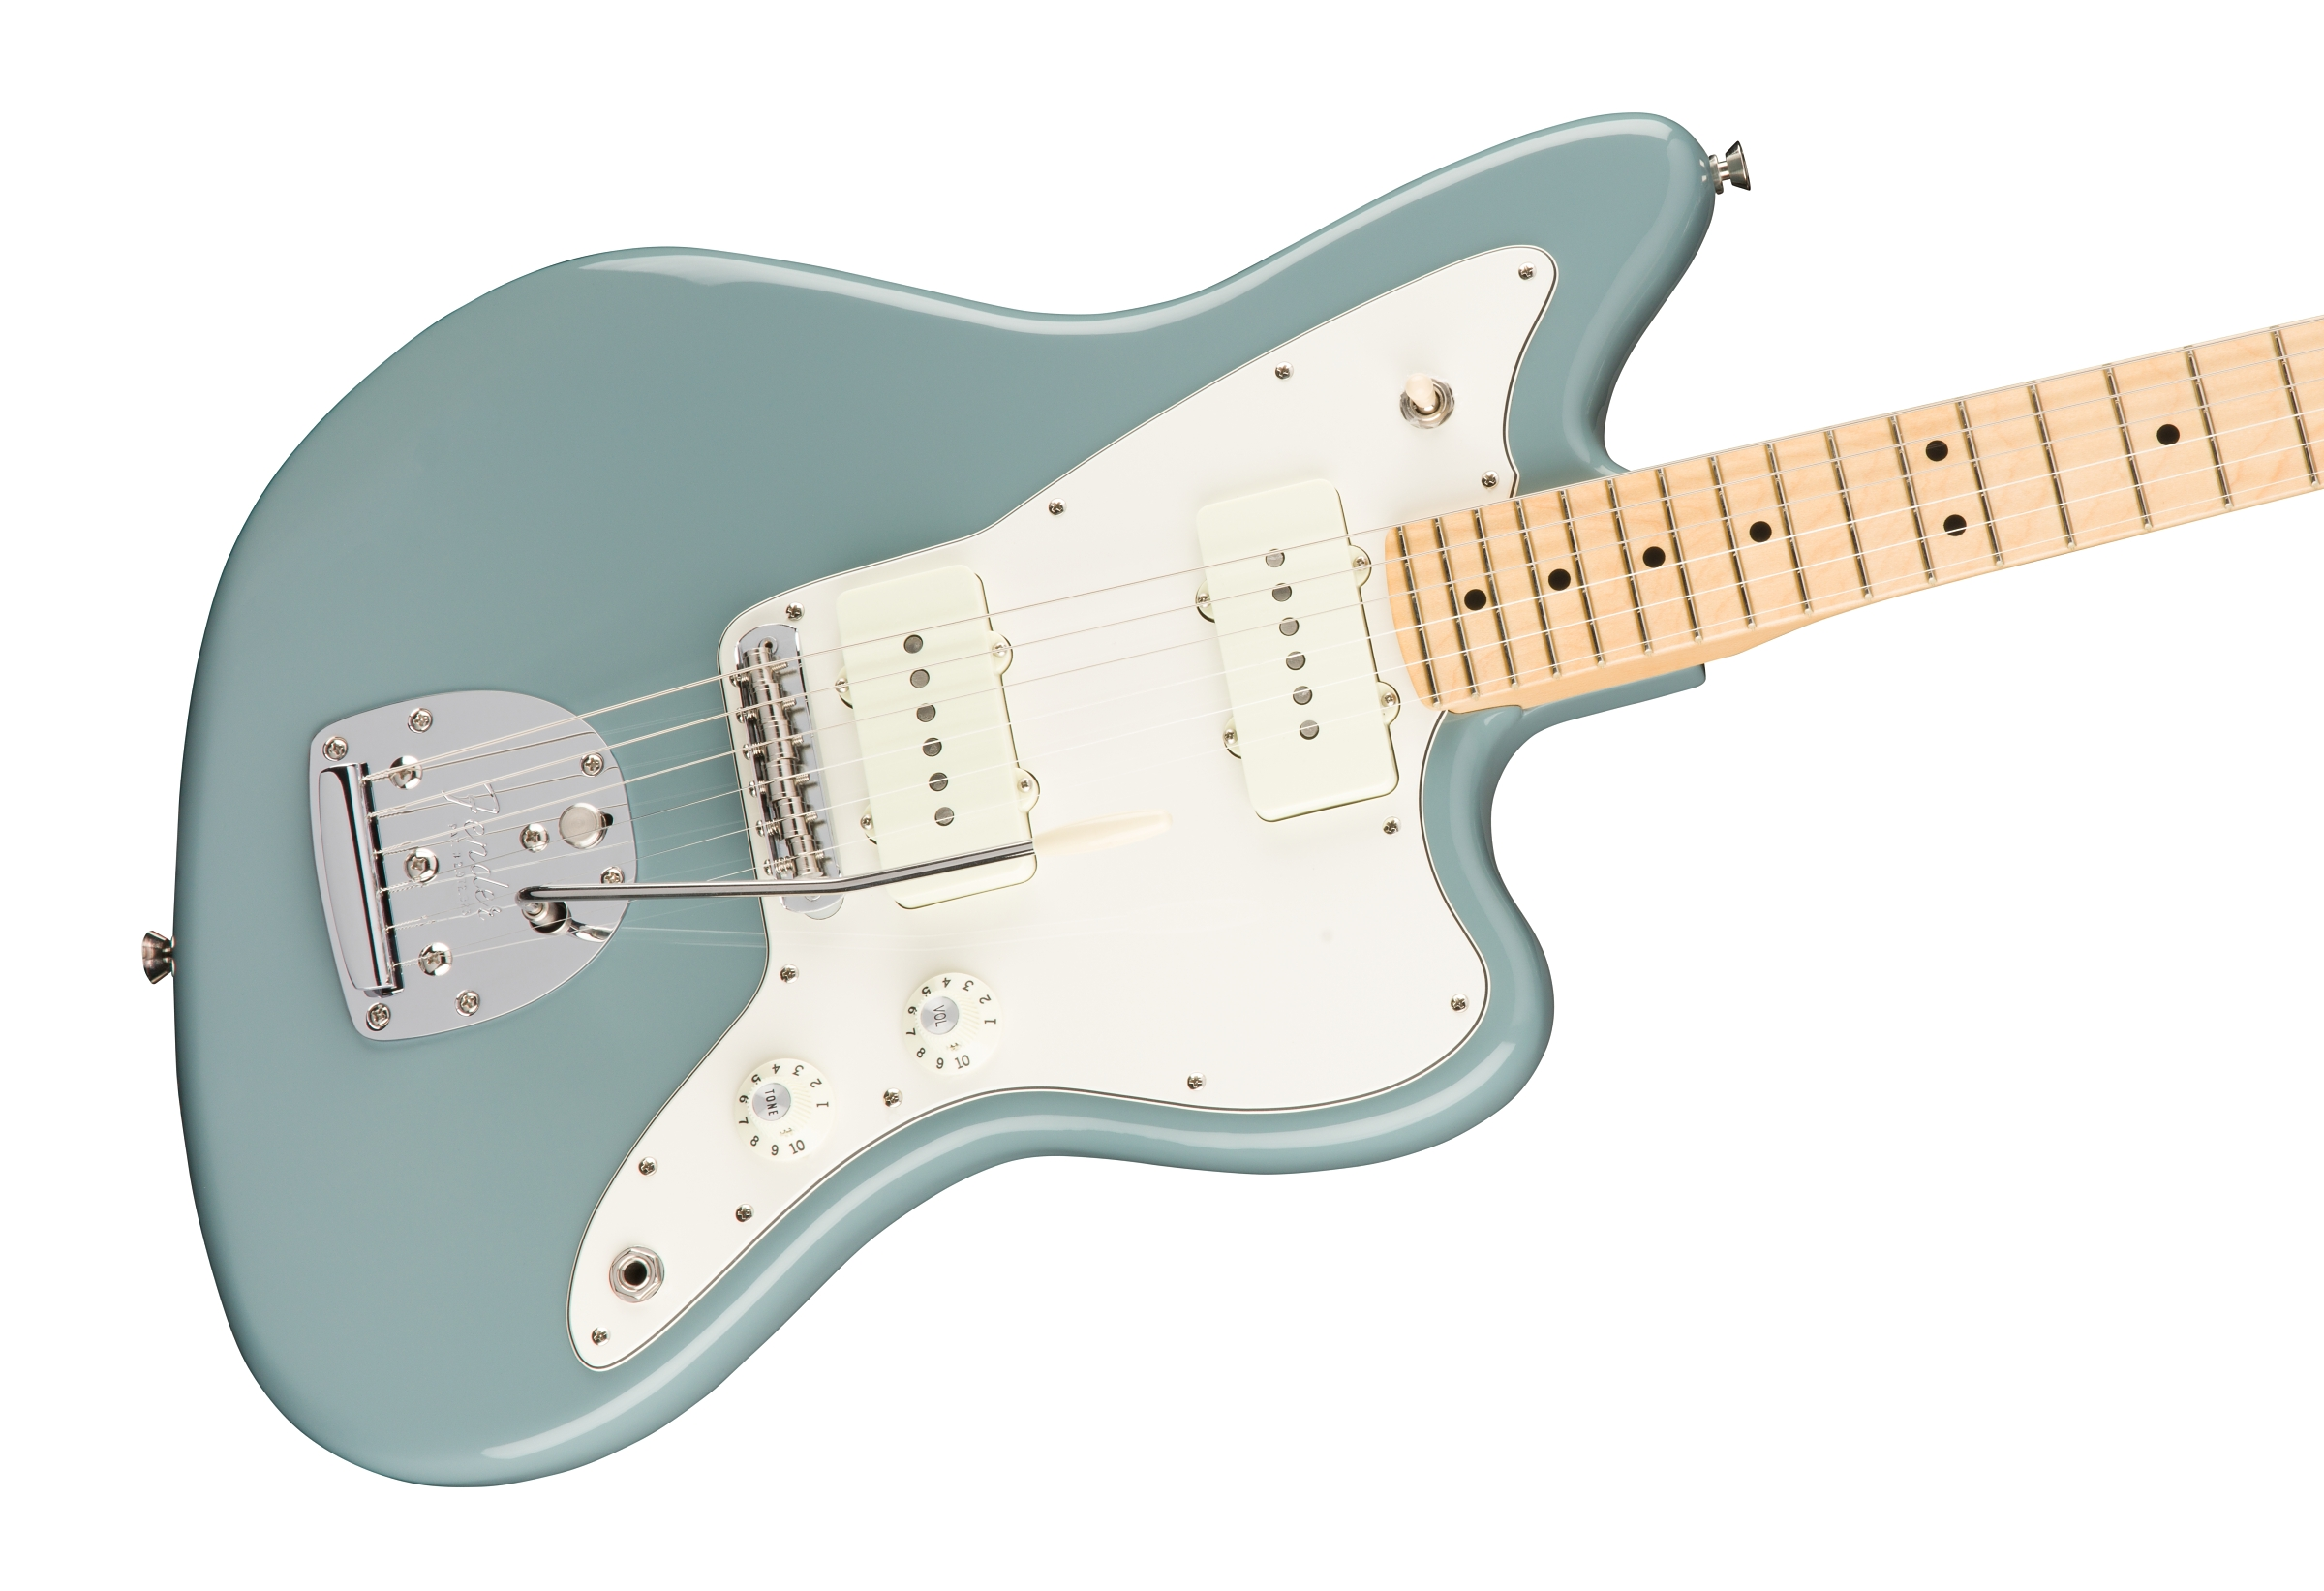 American Professional Jazzmaster Wiring Diagram Schematic Diagrams Fender Pro Maple Fingerboard Sonic Gray Special Telecaster